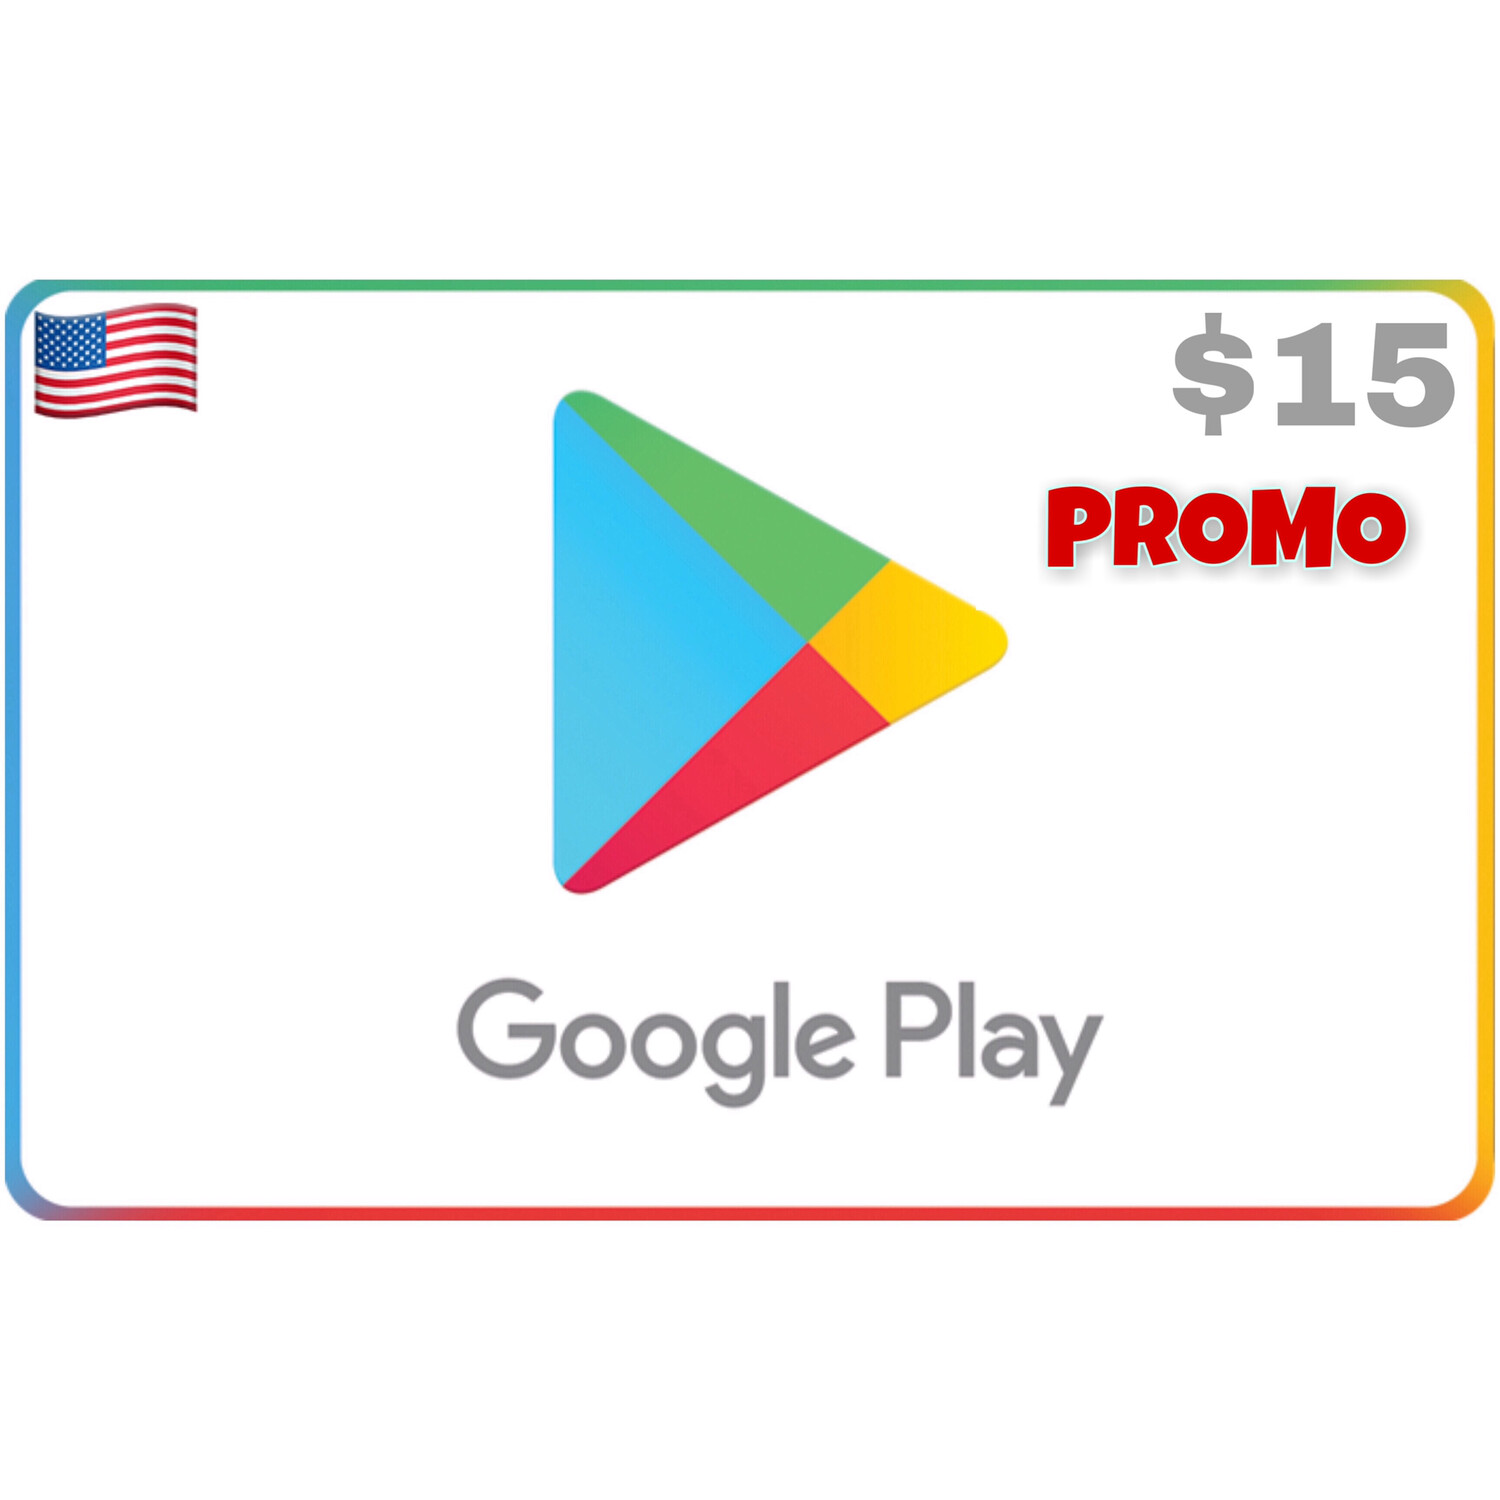 Promo Google Play USA $15 (Web Order Only)